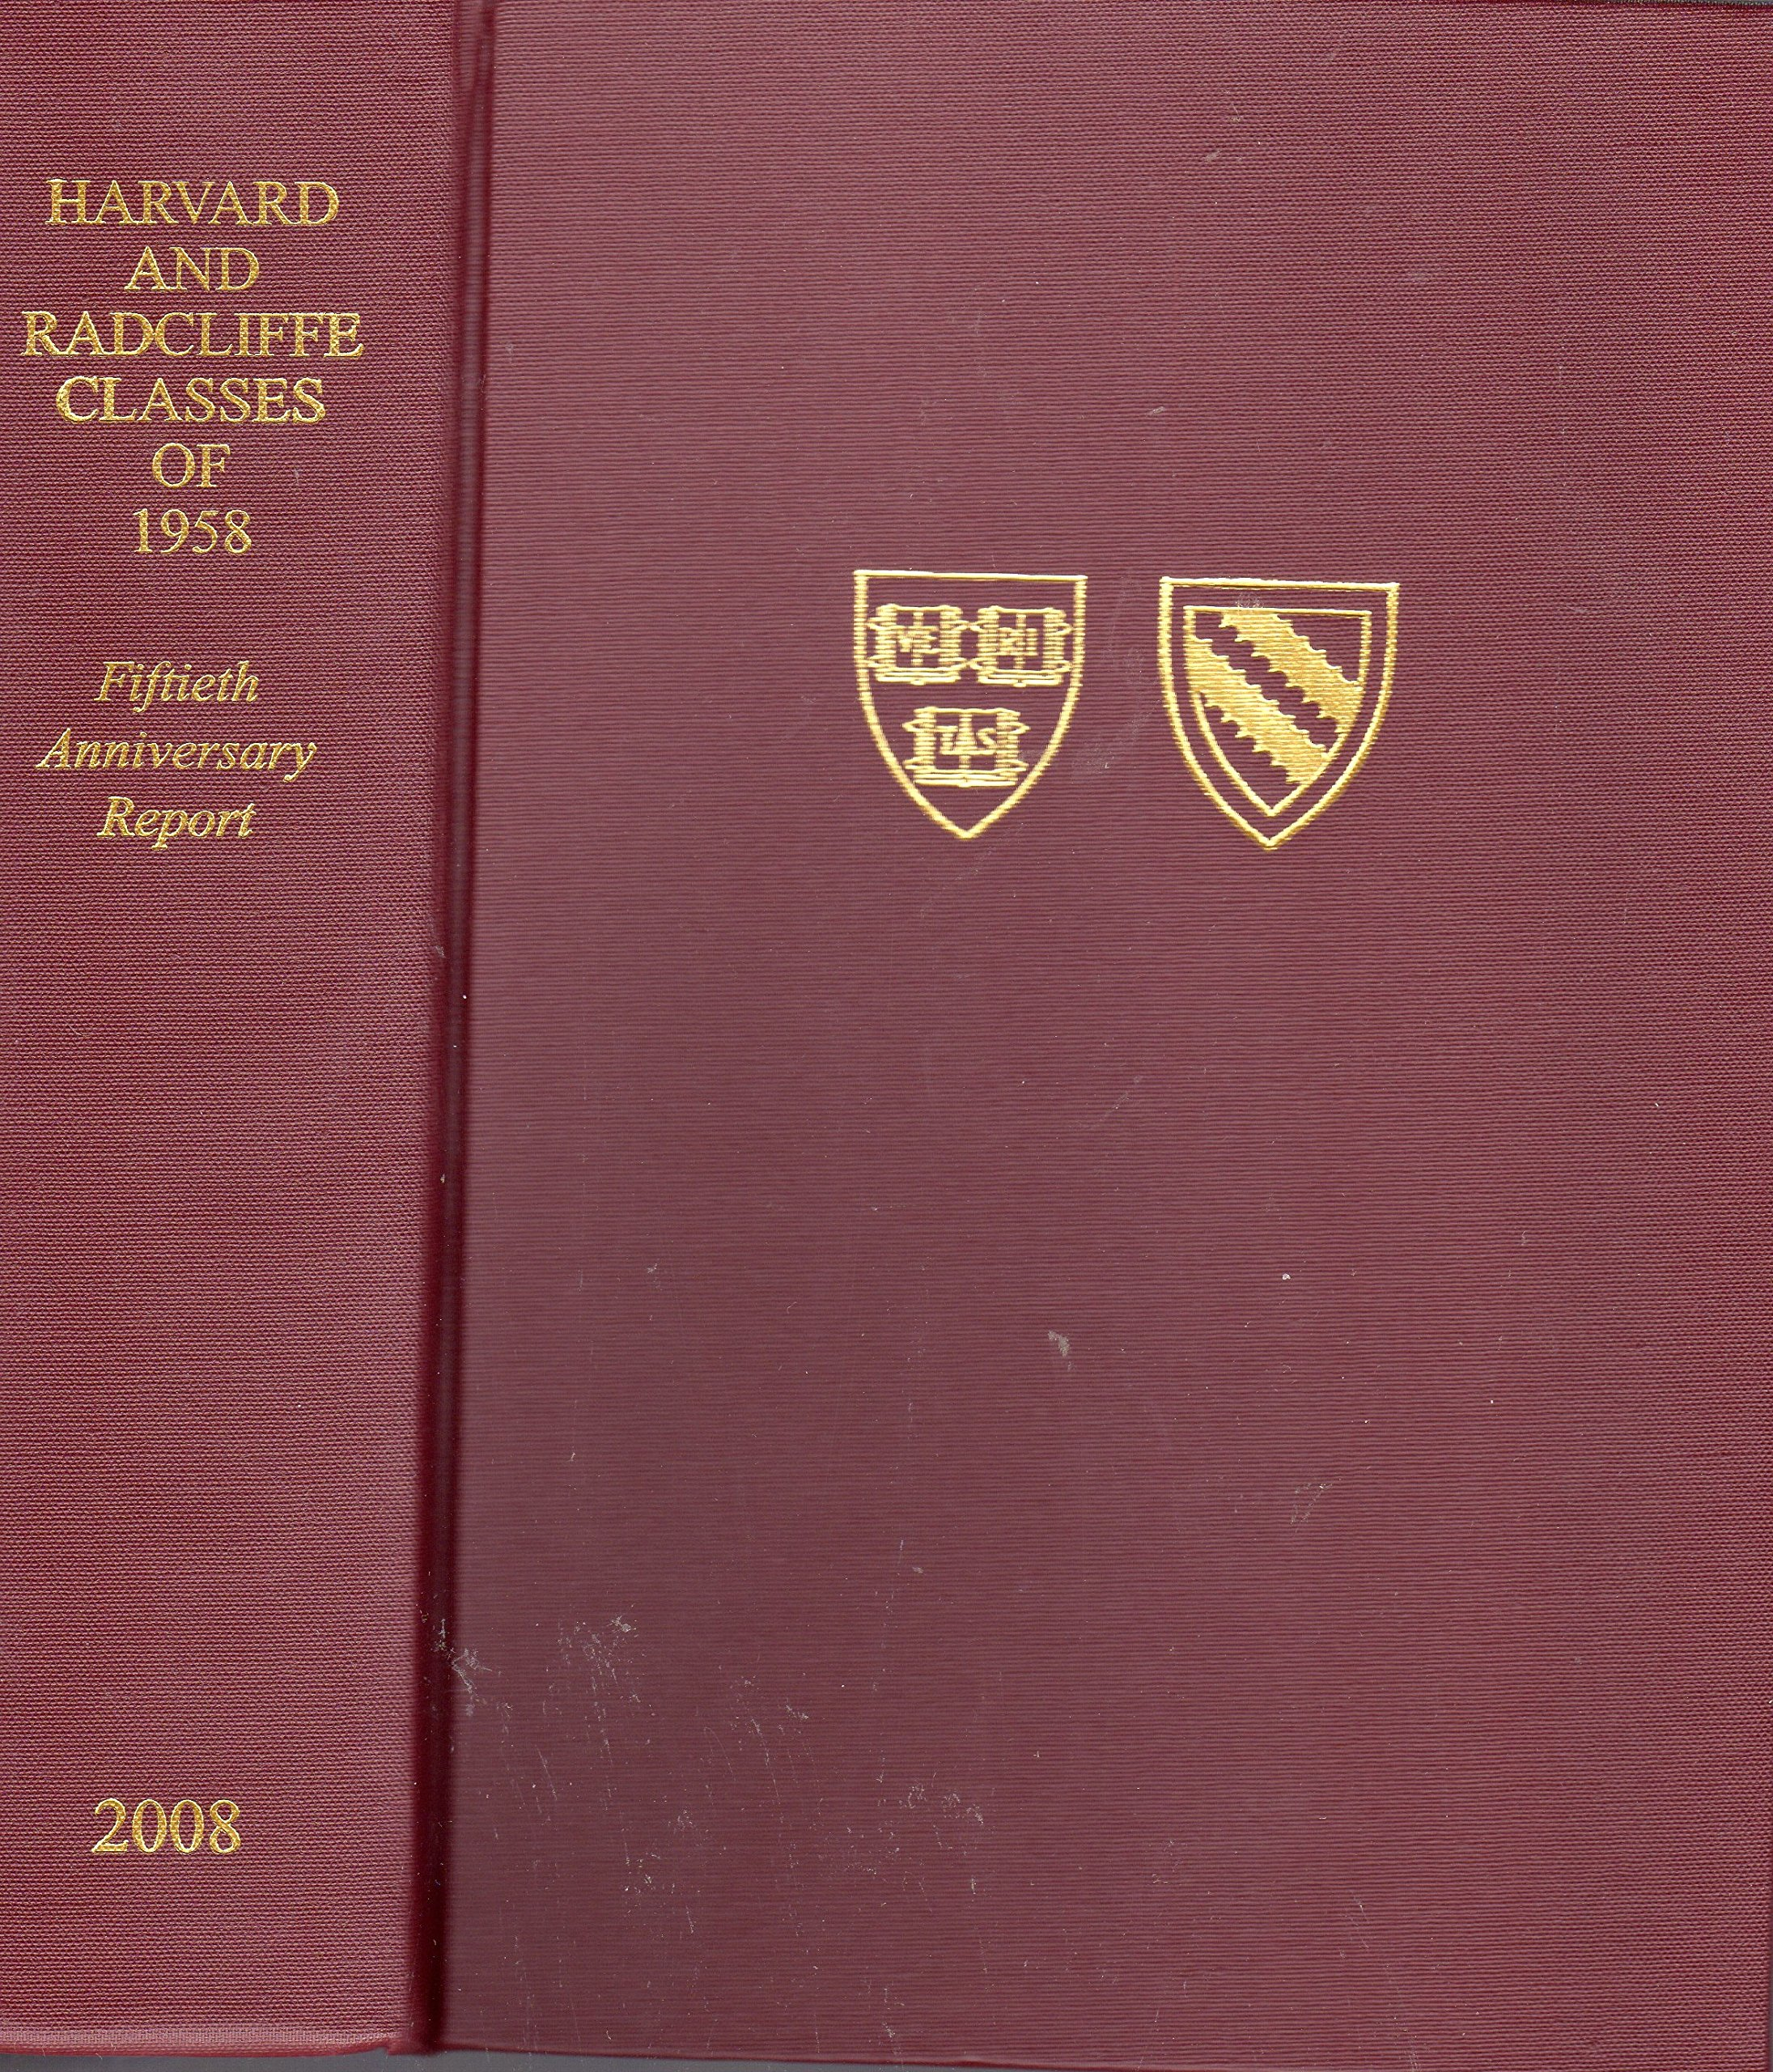 HARVARD AND RADCLIFFE CLASSES OF 1958 FIFTIETH ANNIVERSARY REPORT pdf epub